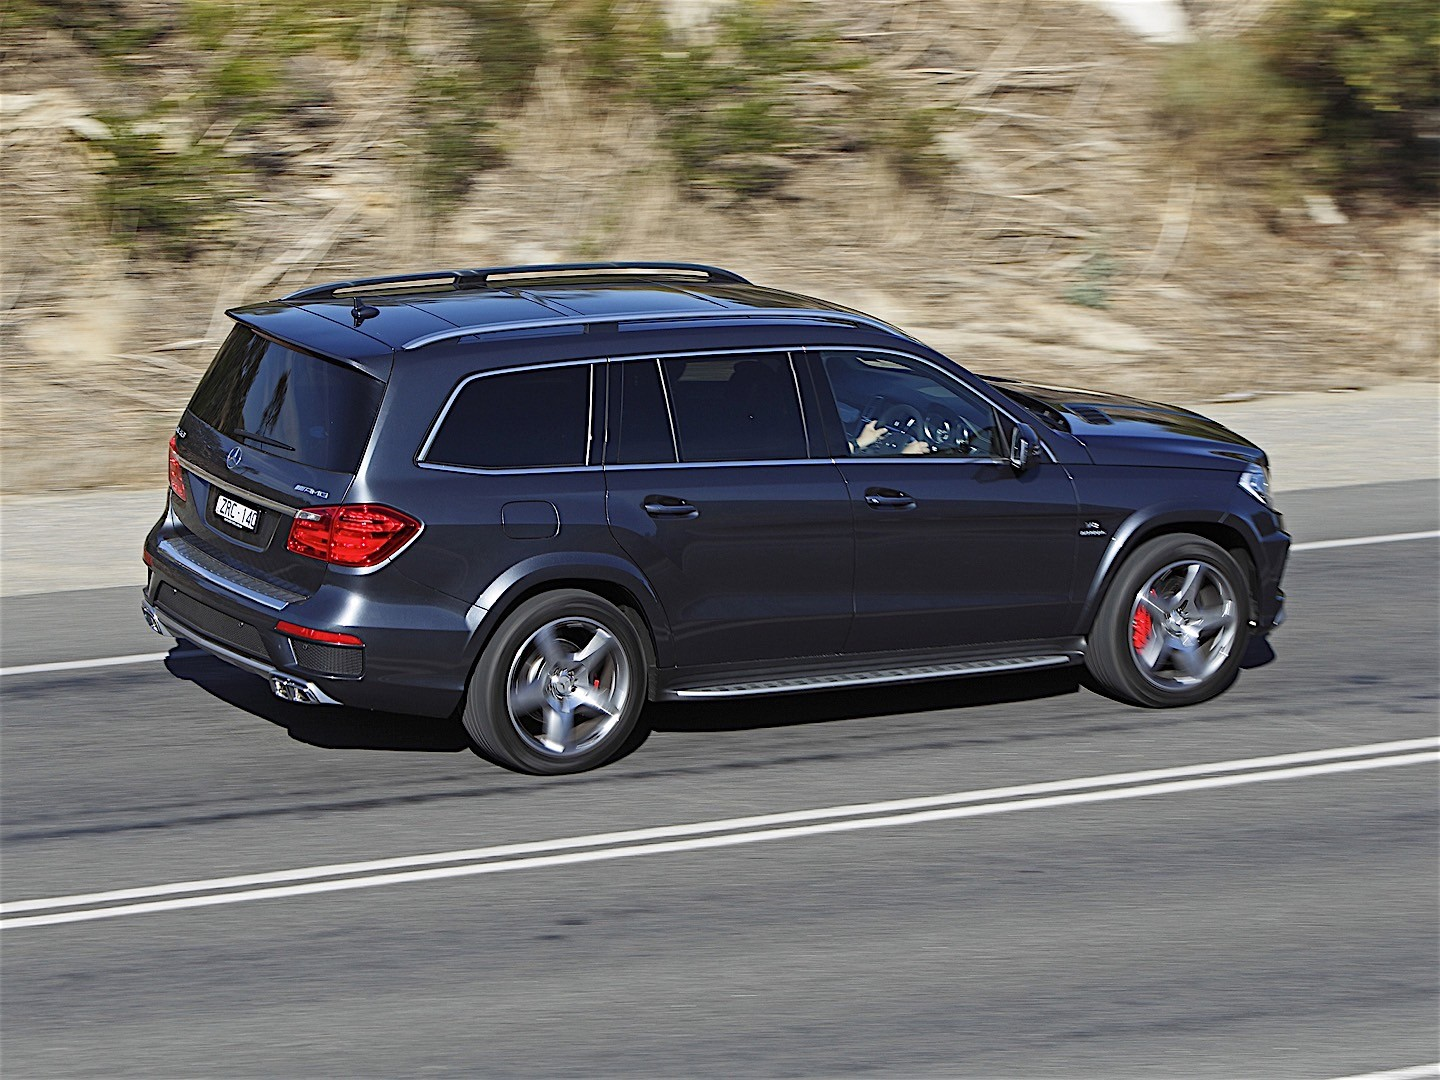 mercedes benz gl 63 amg x166 specs 2012 2013 2014 2015 2016 autoevolution. Black Bedroom Furniture Sets. Home Design Ideas